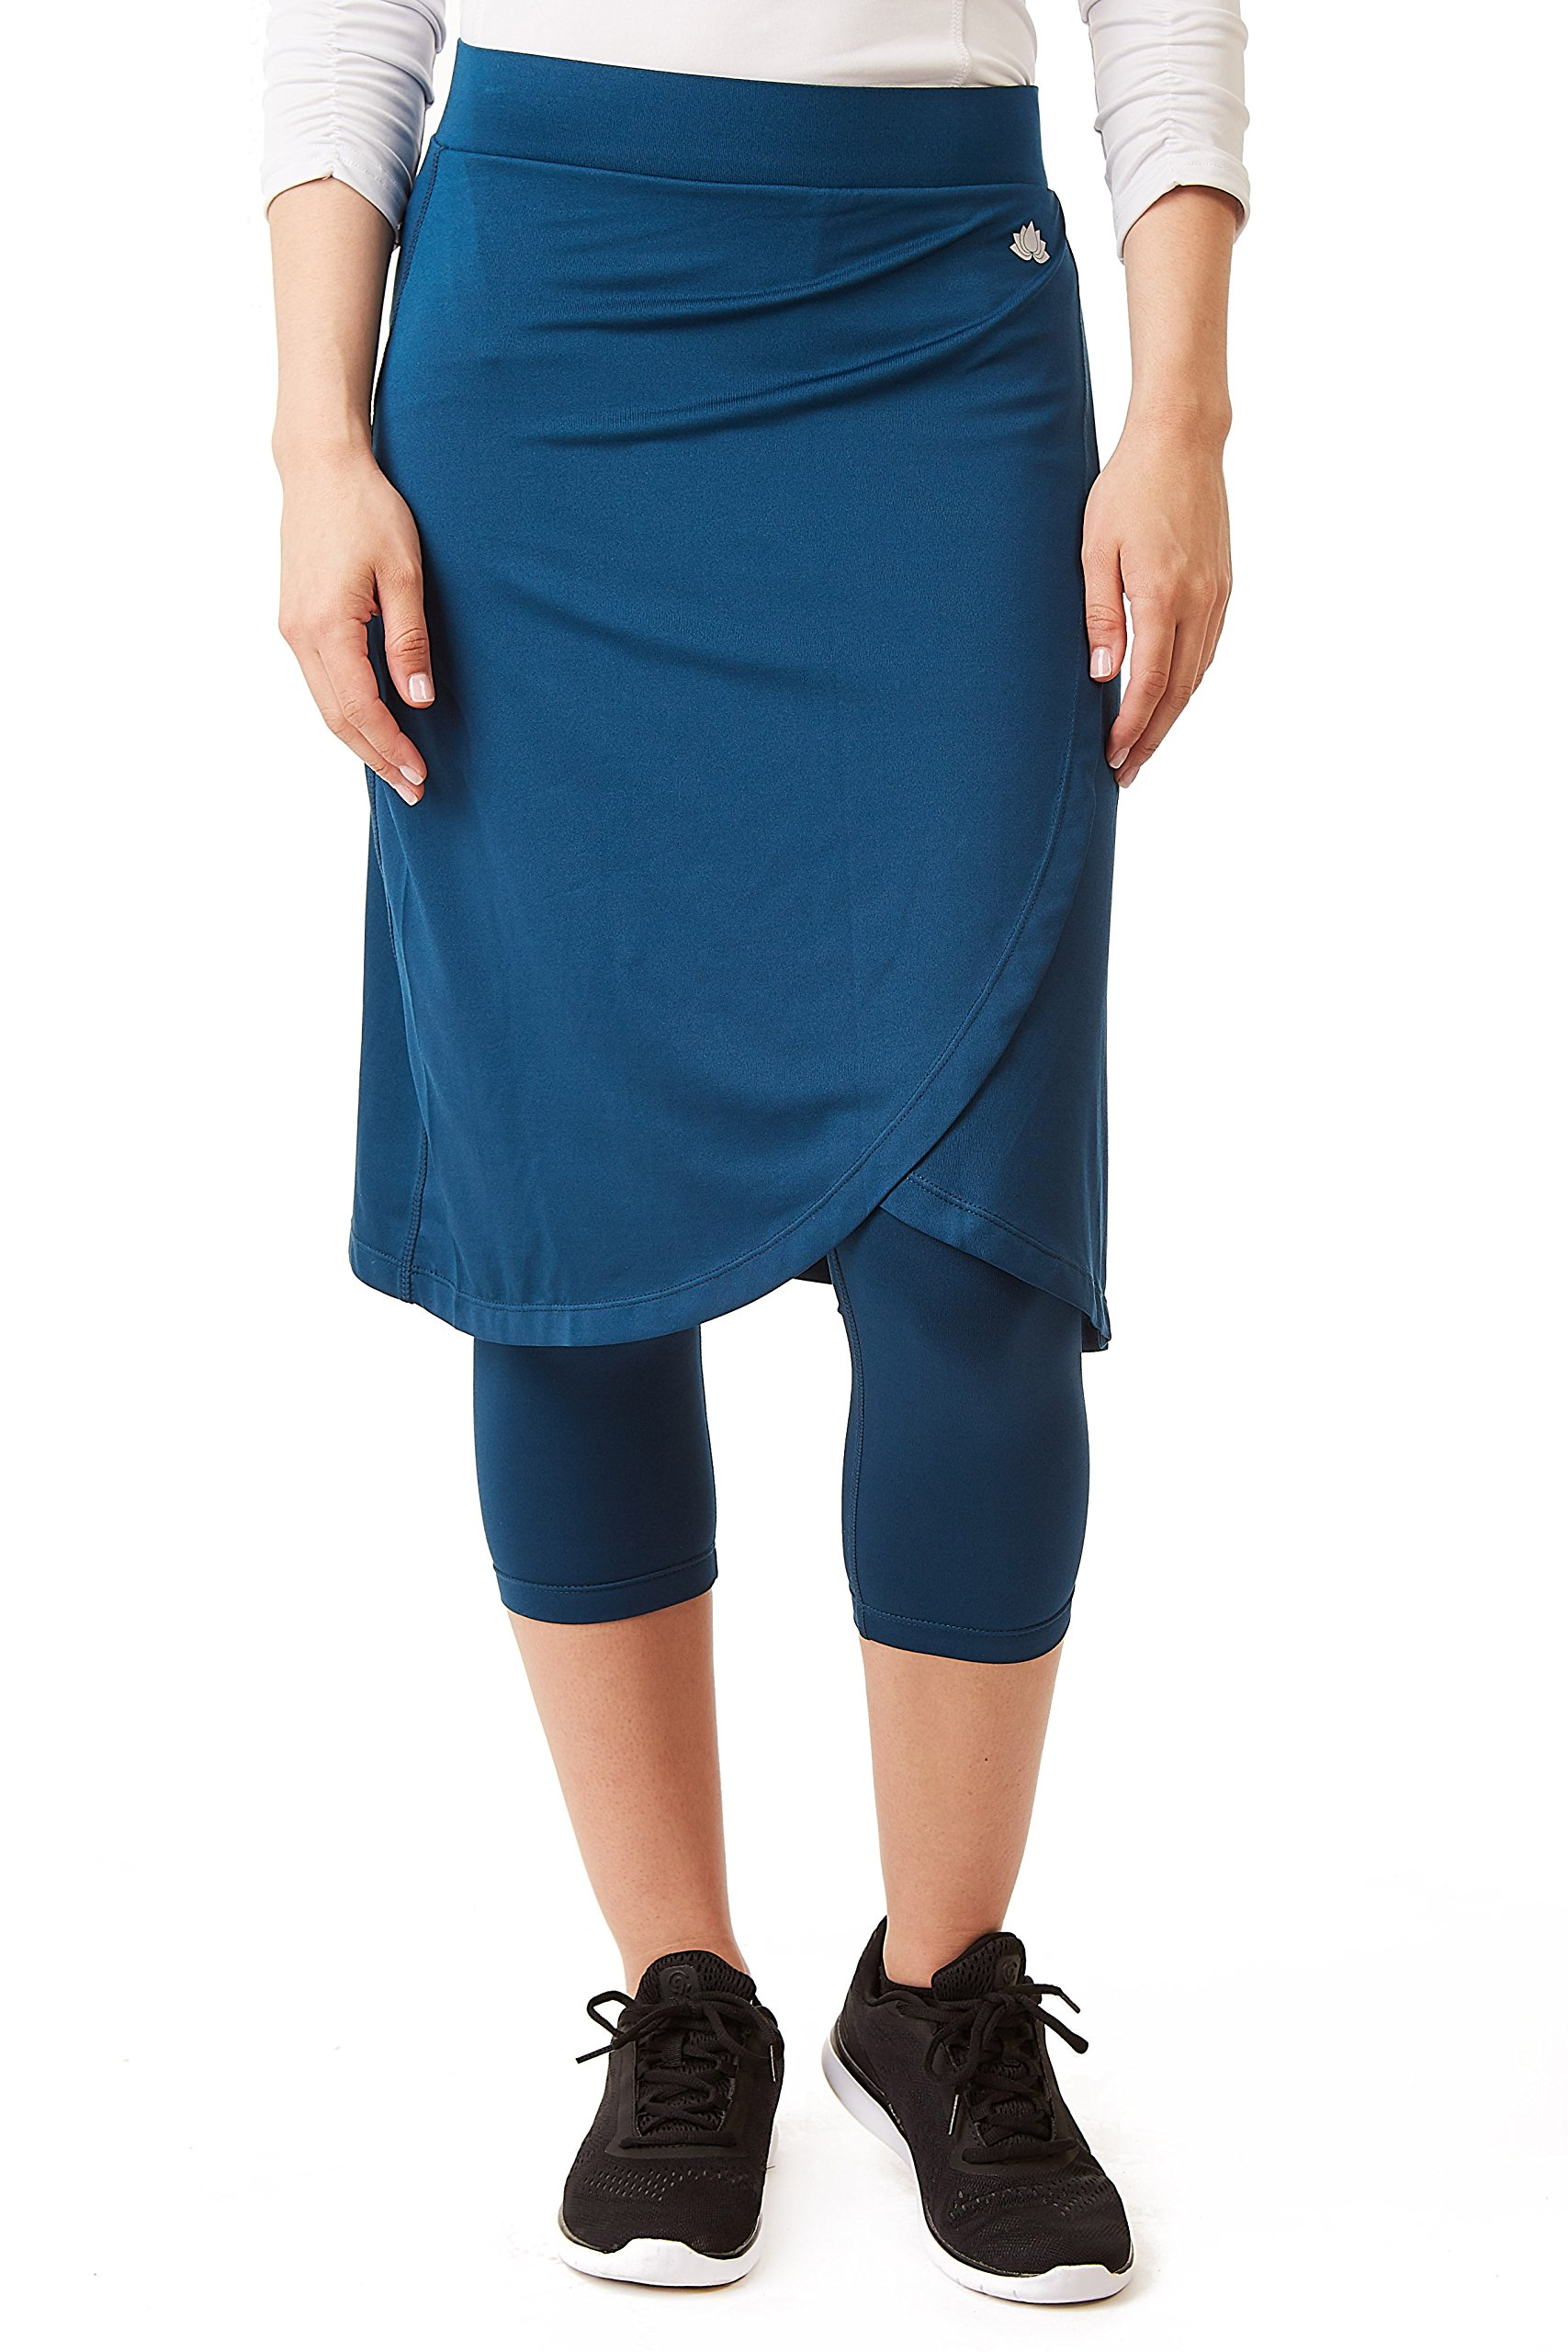 Snoga Modest Workout Faux Wrap with 3/4 Length Leggings Attached - Blue, XS